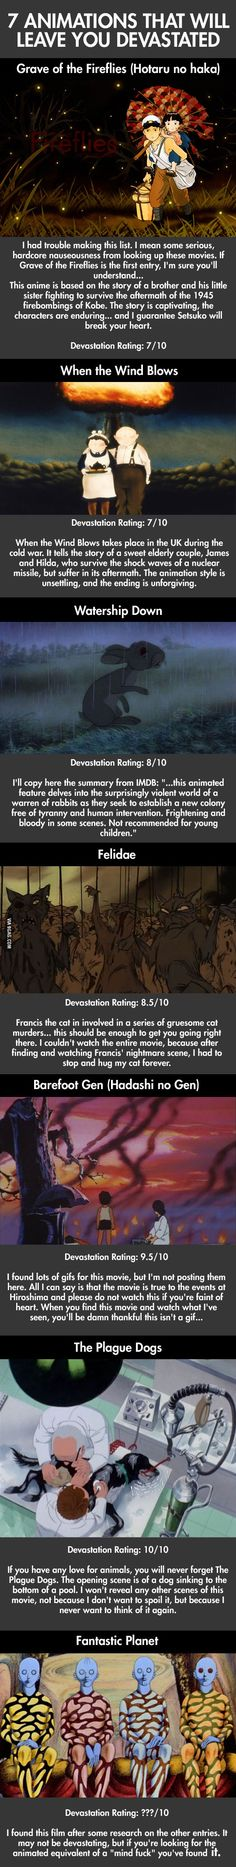 not all animated movies are for kids. - Watership Down and Plague Dogs.not all animated movies are for kids. - Watership Down and Plague Dogs. Film D'animation, Film Serie, Movie List, Movie Tv, Movies Showing, Movies And Tv Shows, Animé Romance, All Animated Movies, Grave Of The Fireflies